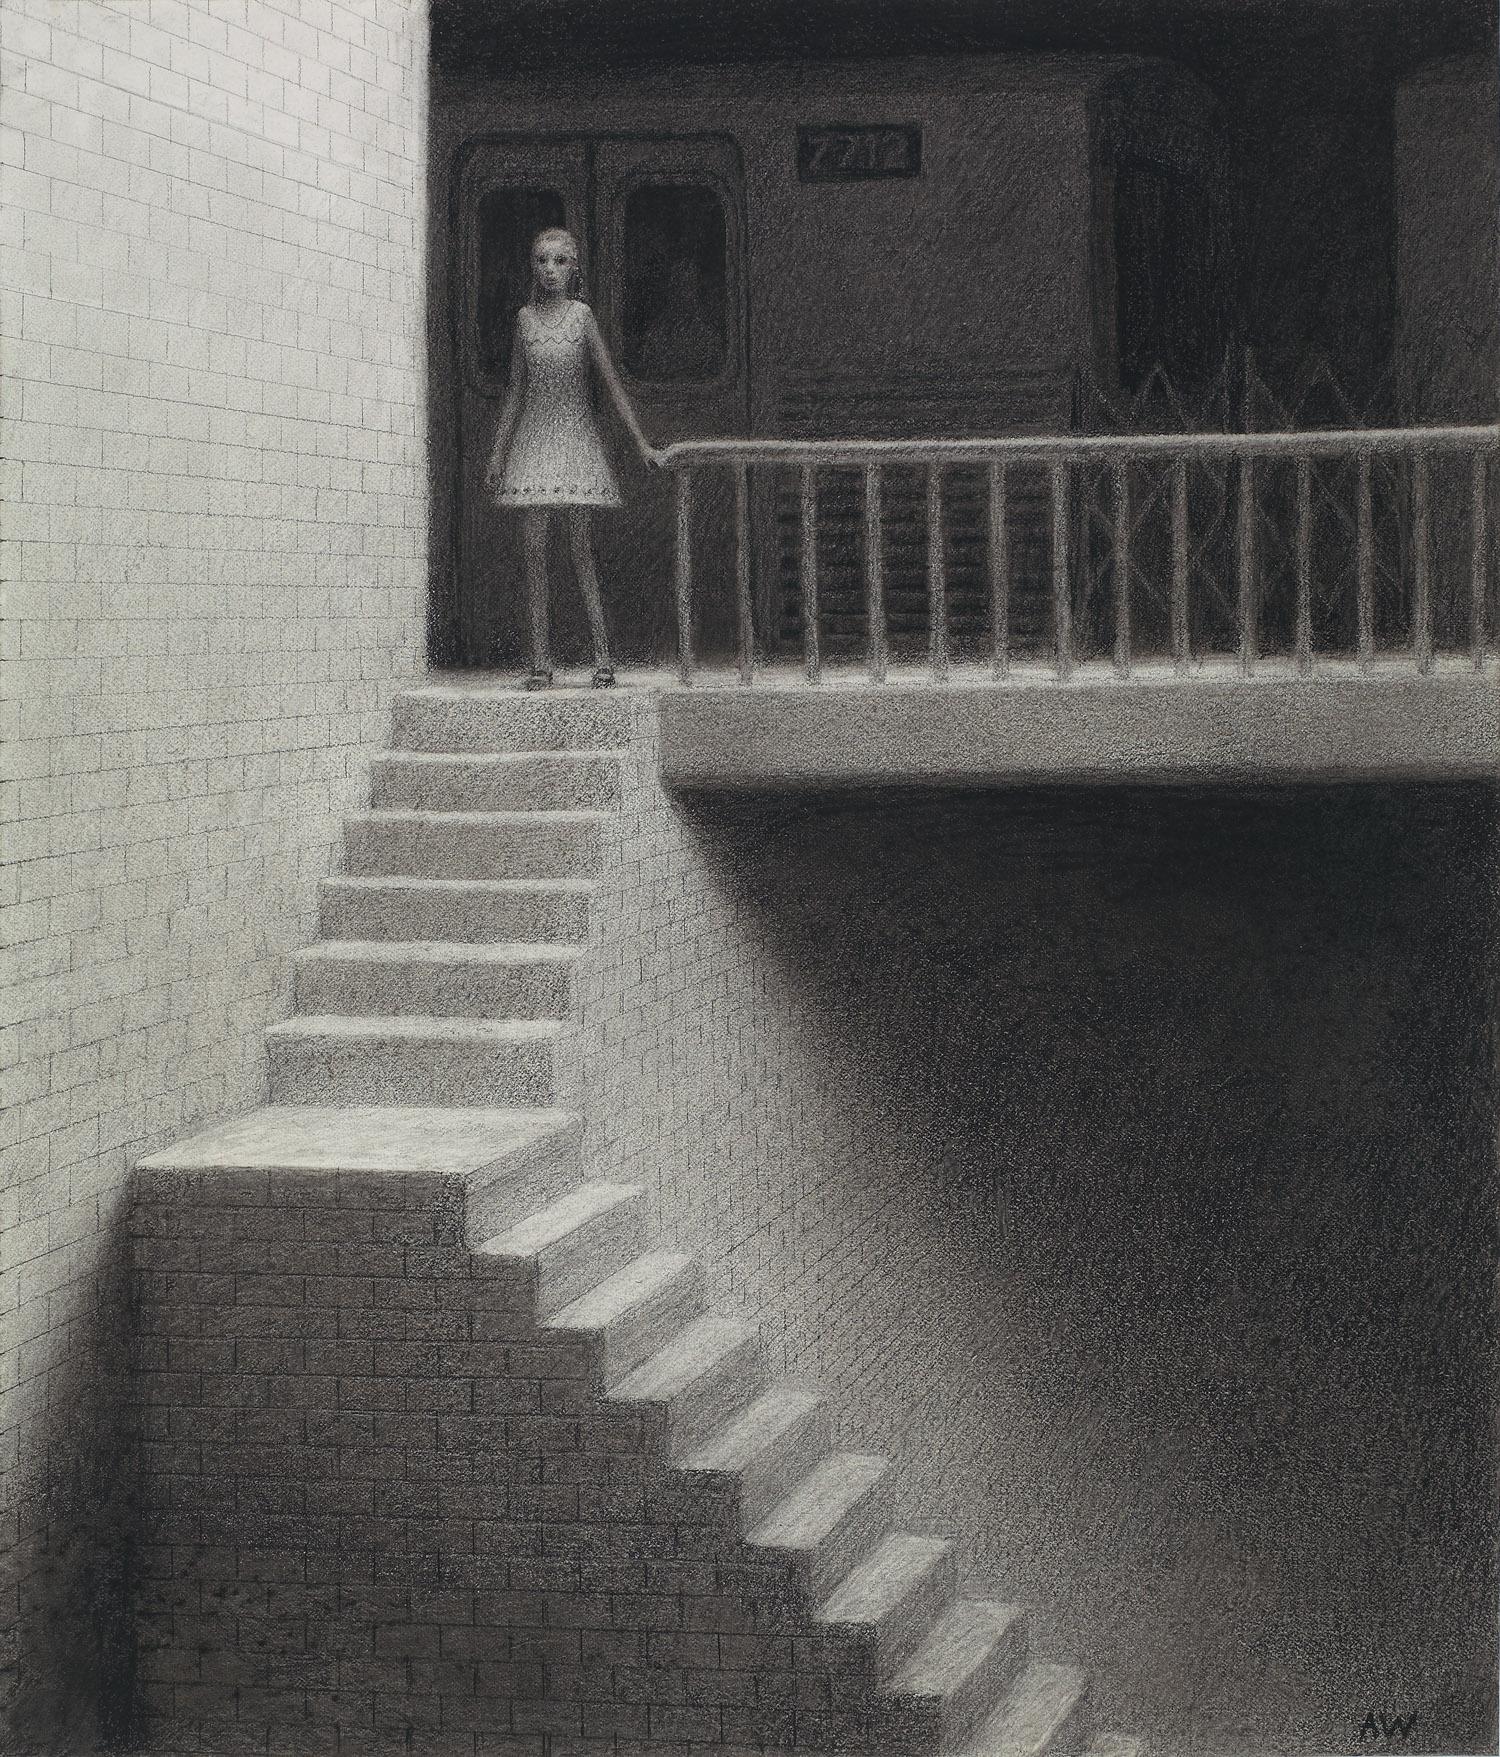 Tunne l, charcoal on paper, 16.5 x 14 in / 42 x 36 cm, 2008